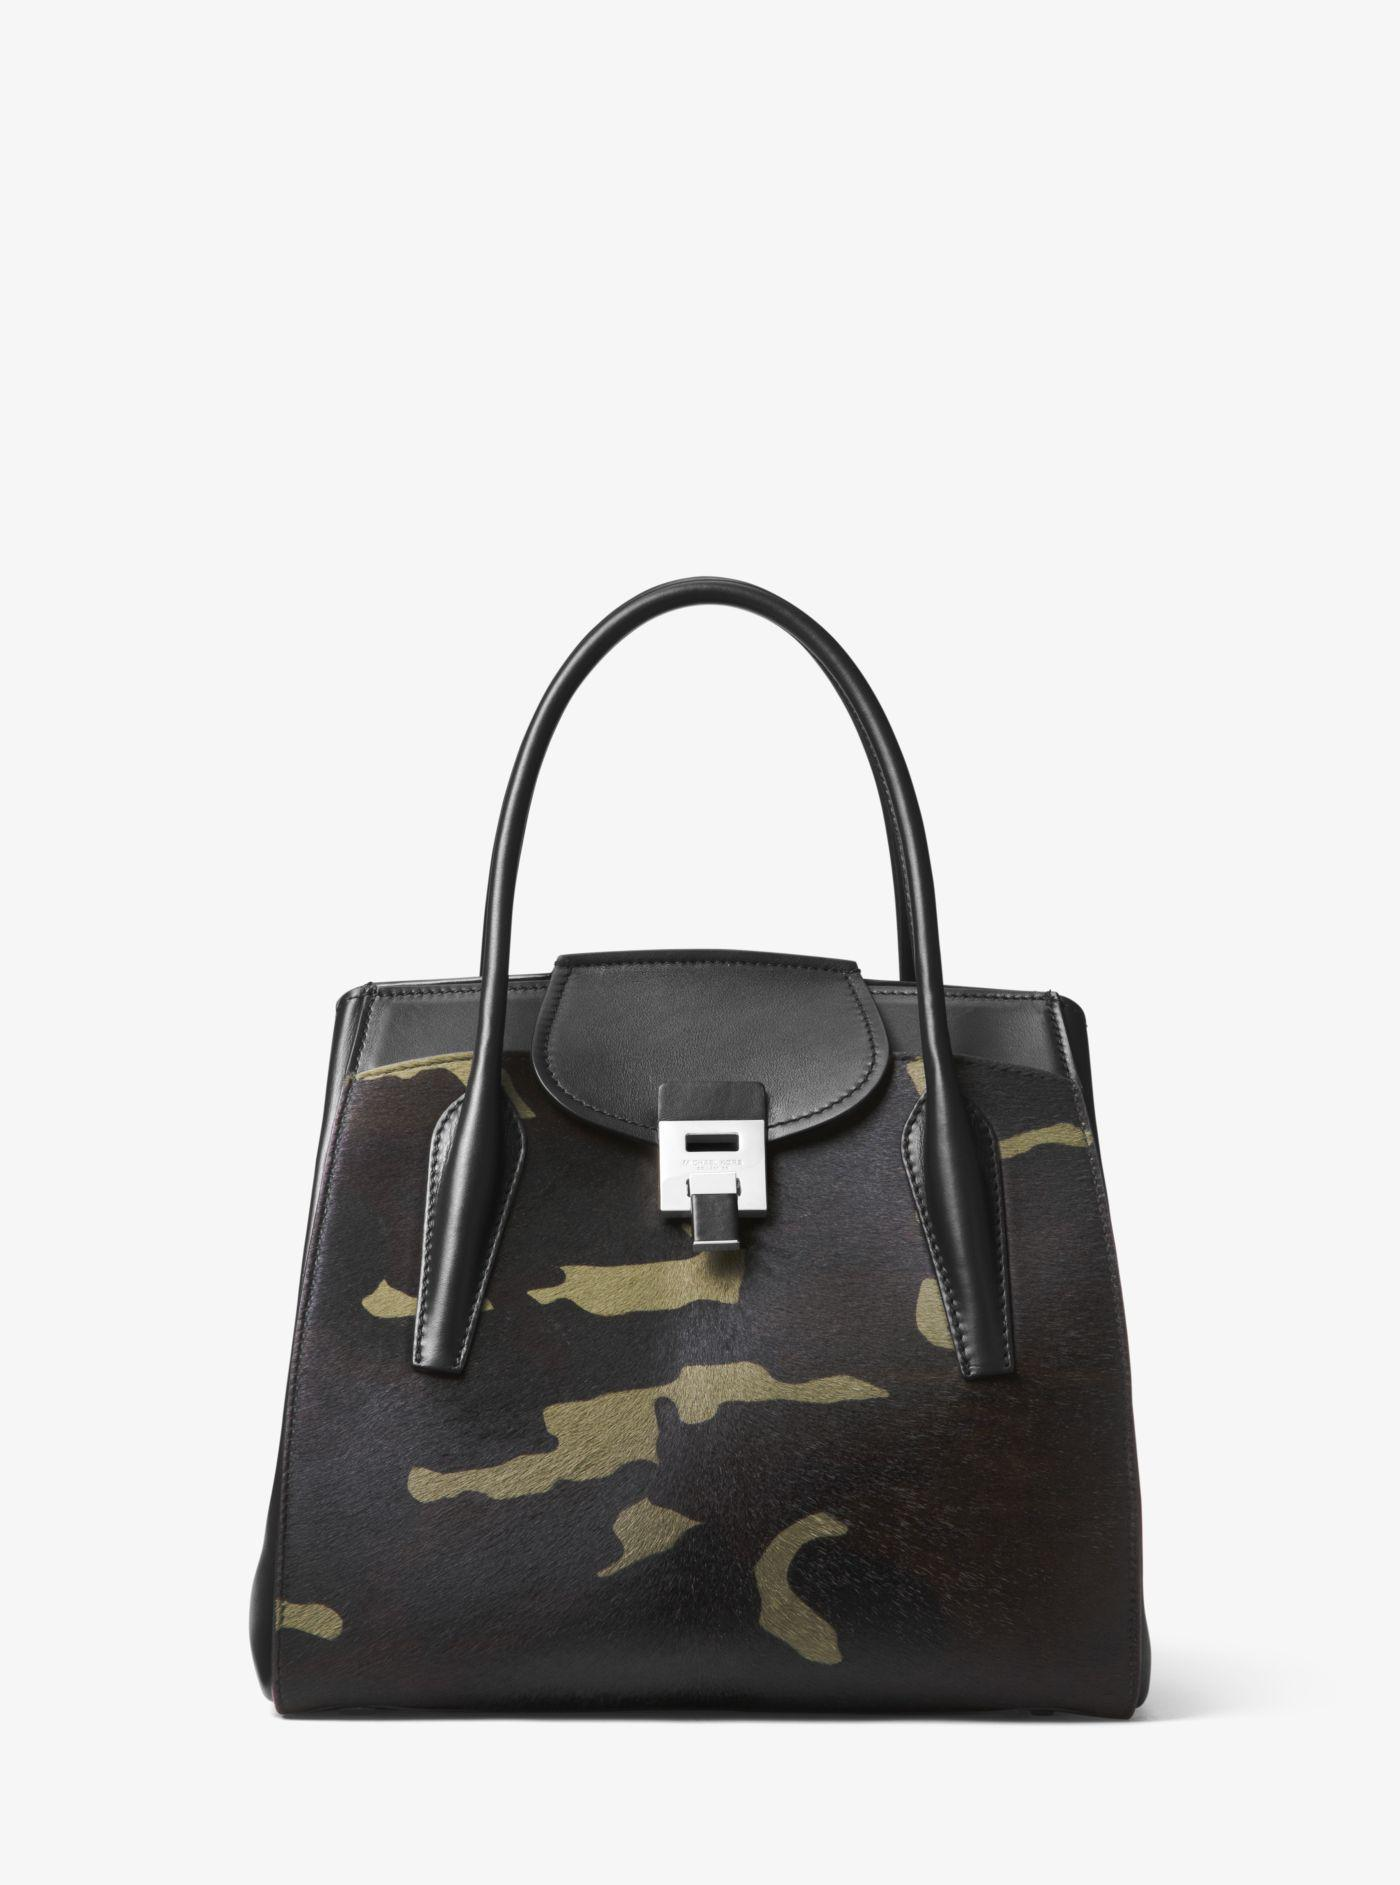 ac384d0a1ee1 Michael Kors Bancroft Large Camouflage Calf Hair Satchel in Green - Lyst